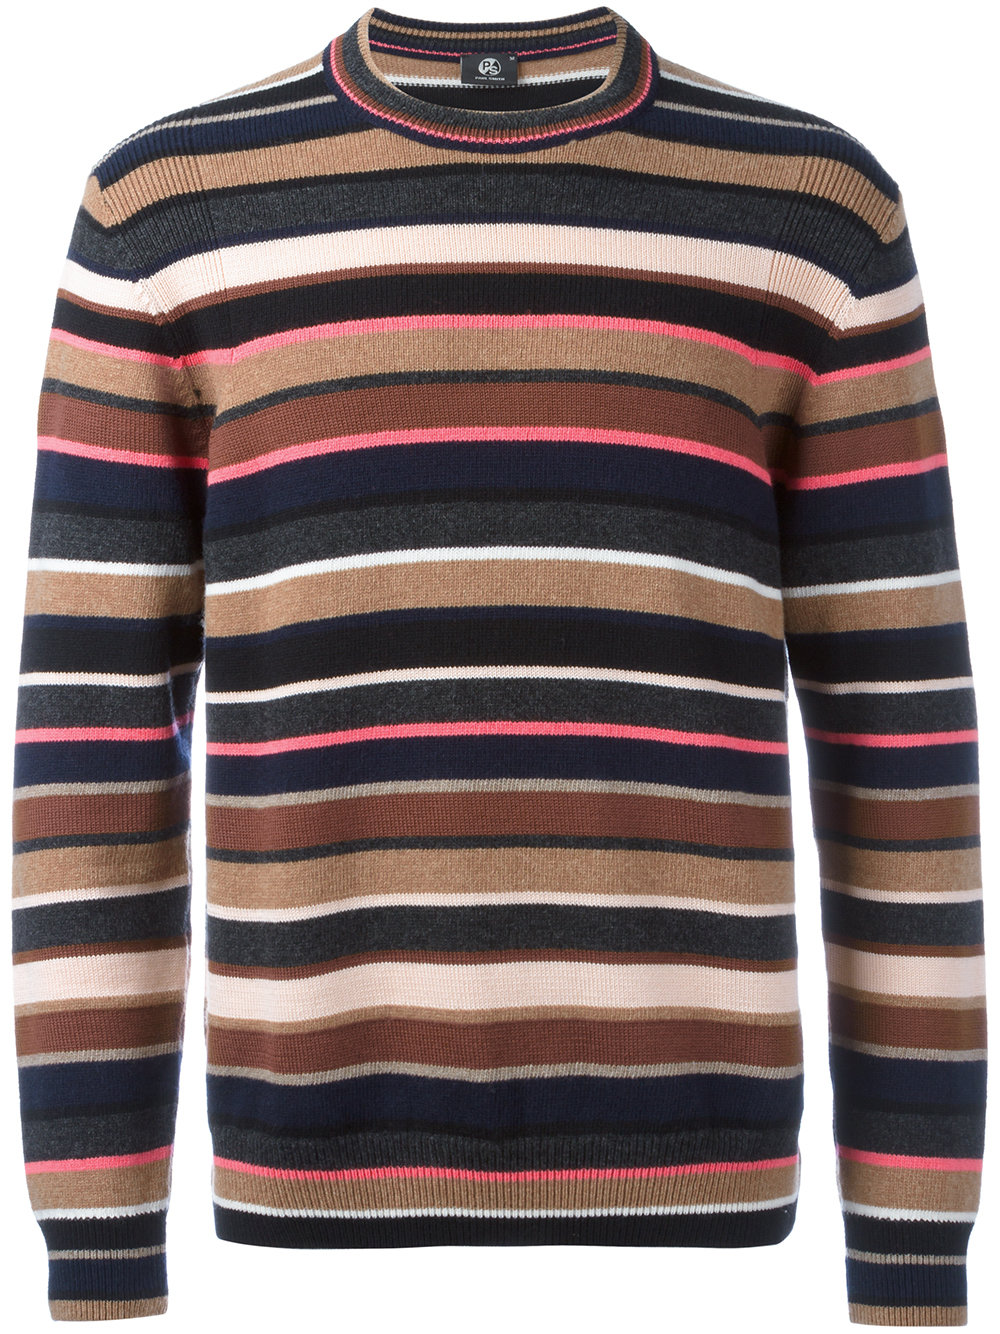 Suéter PS by Paul Smith, na Farfetch (R$450,00)